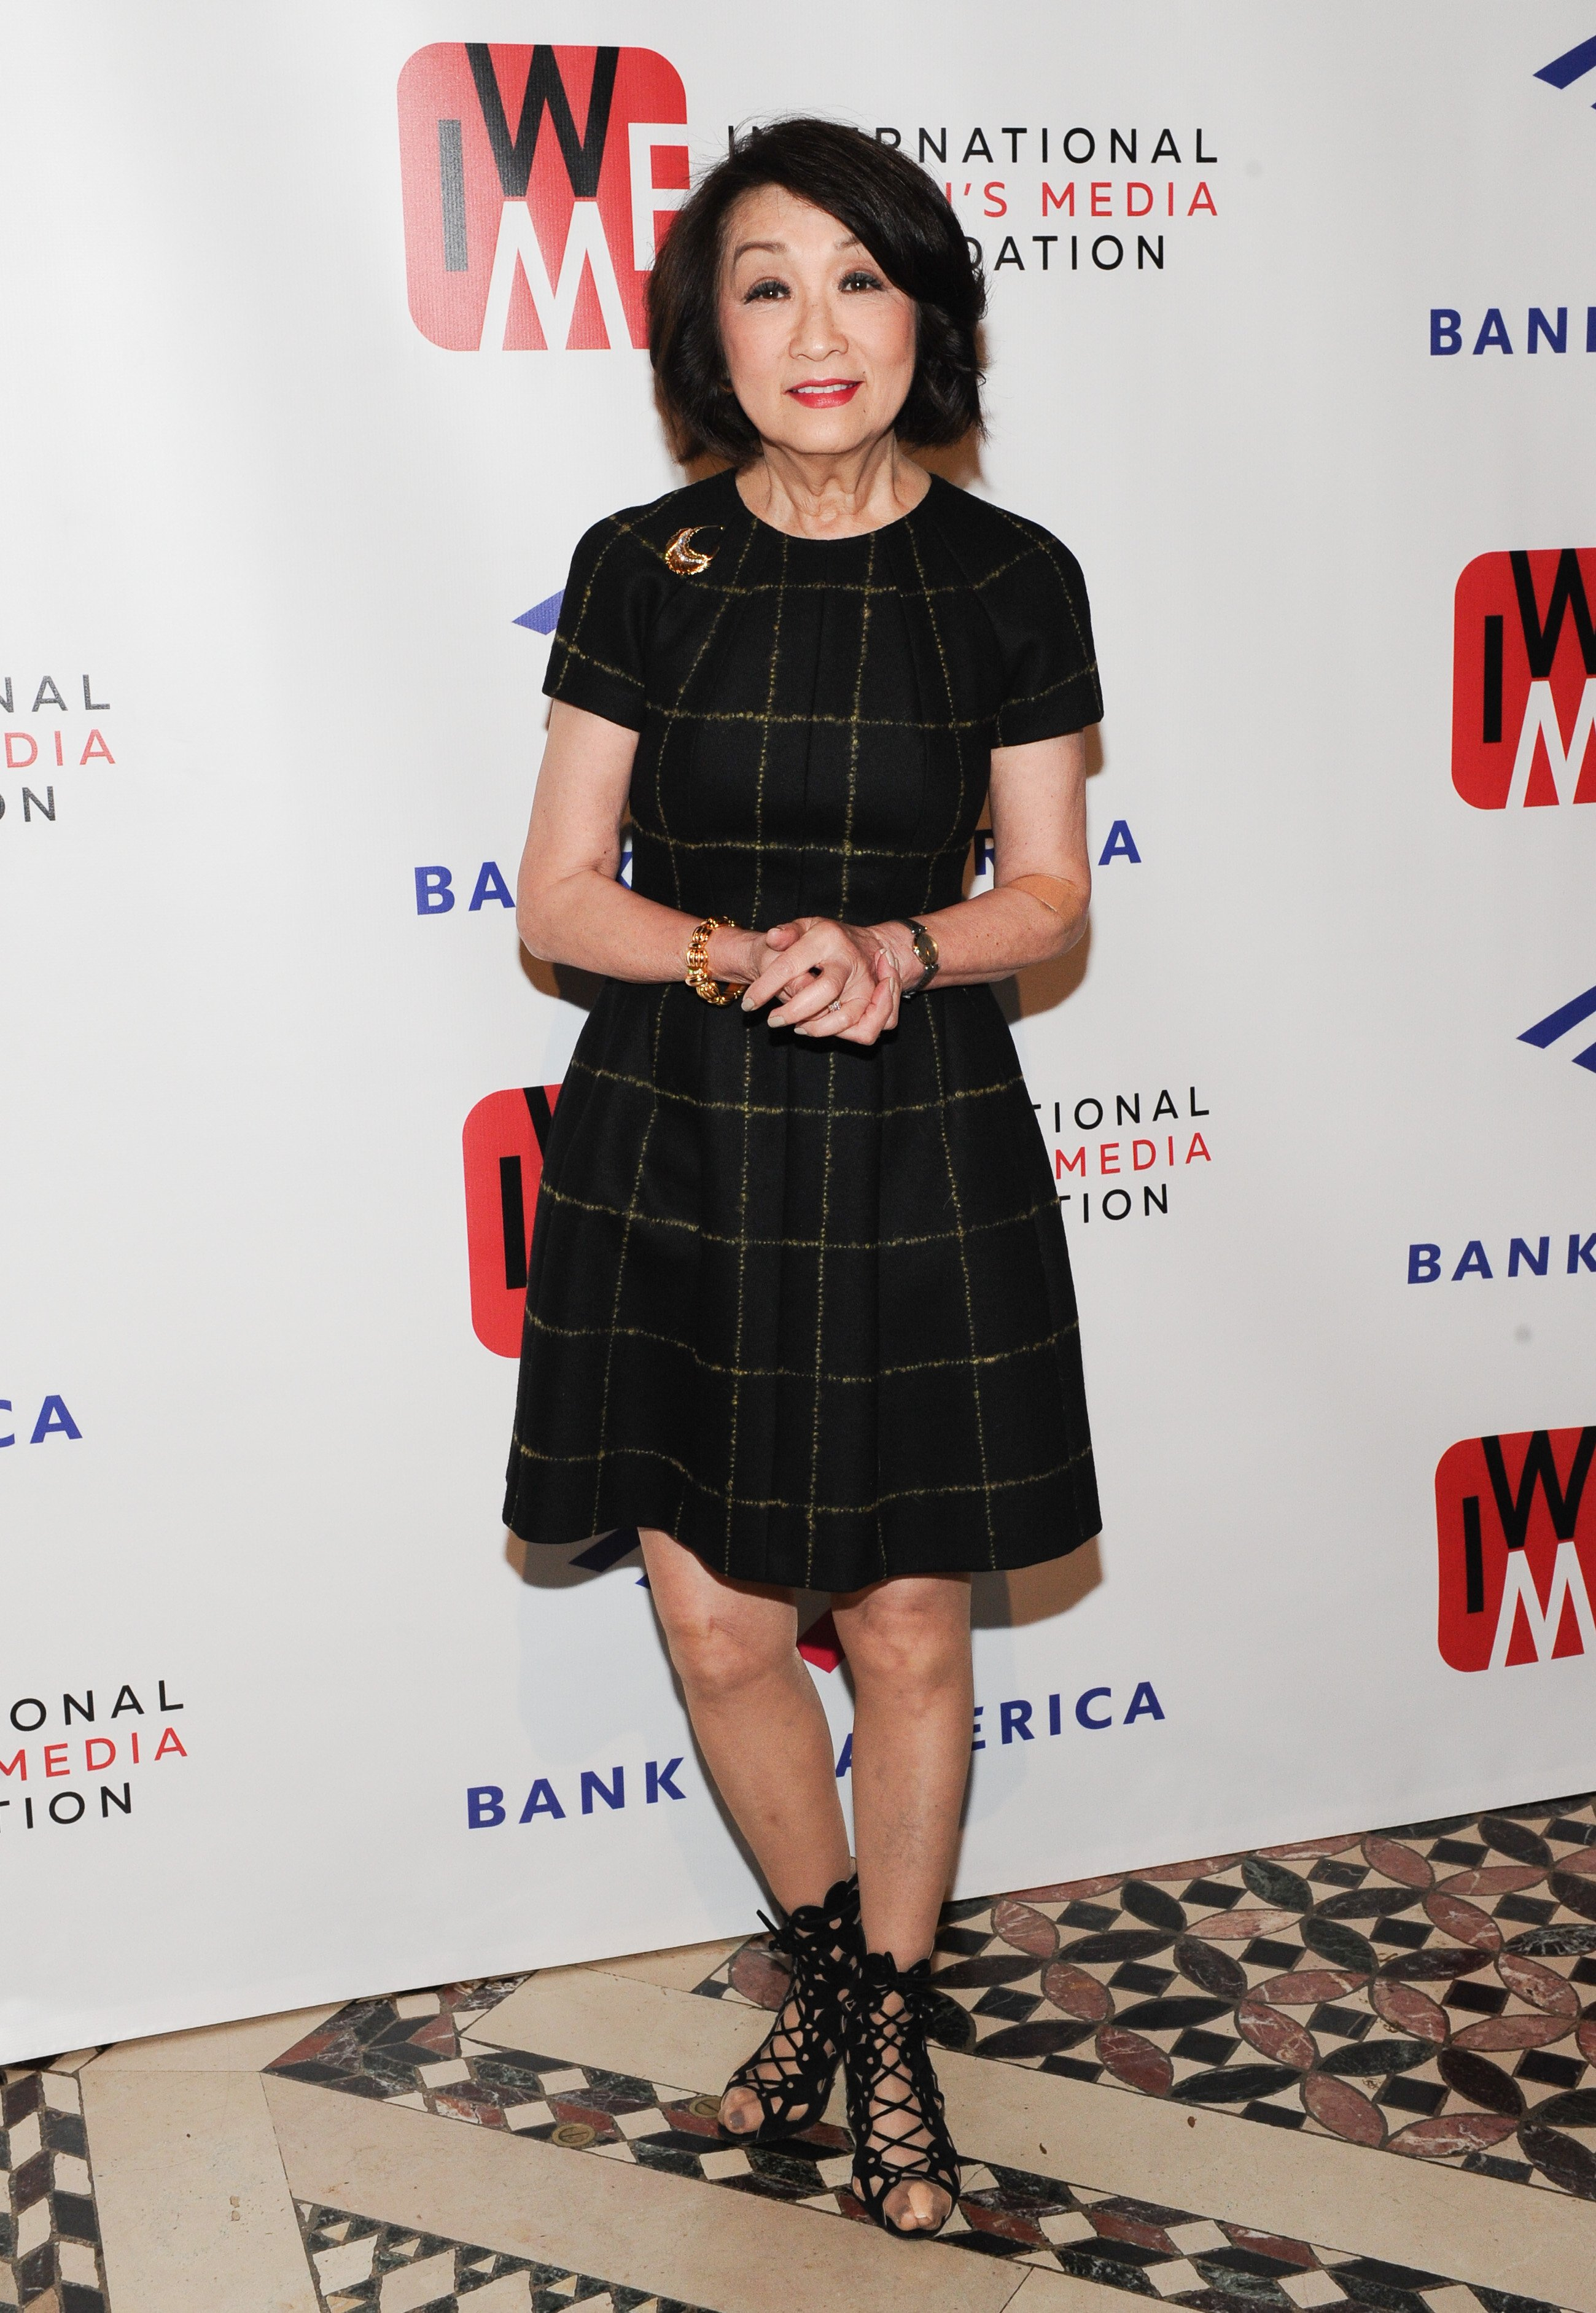 Connie Chung at The International Women's Media Foundation's 2019 Courage in Journalism Awards | Photo: Getty Images